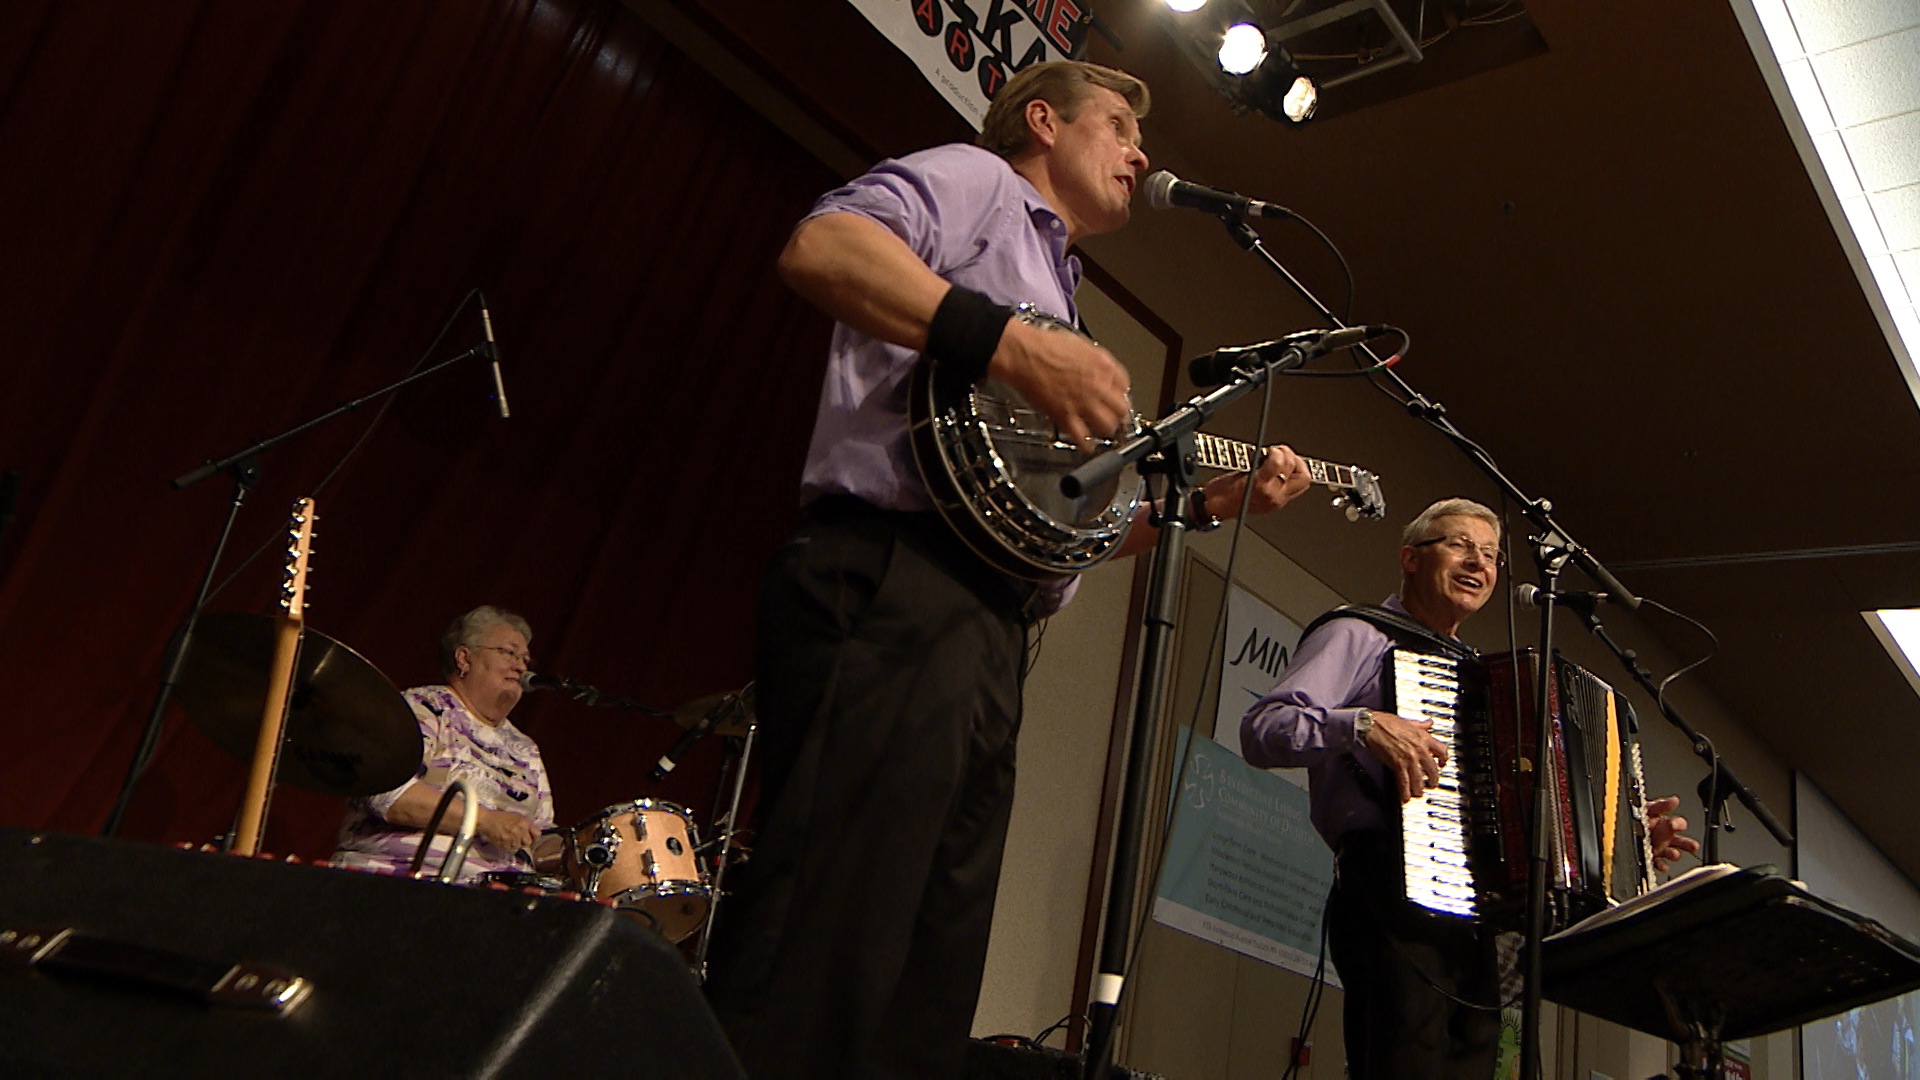 Funtime Polka Party to feature Richie Yurkovich & Polkarioty on  Saturday, January 12